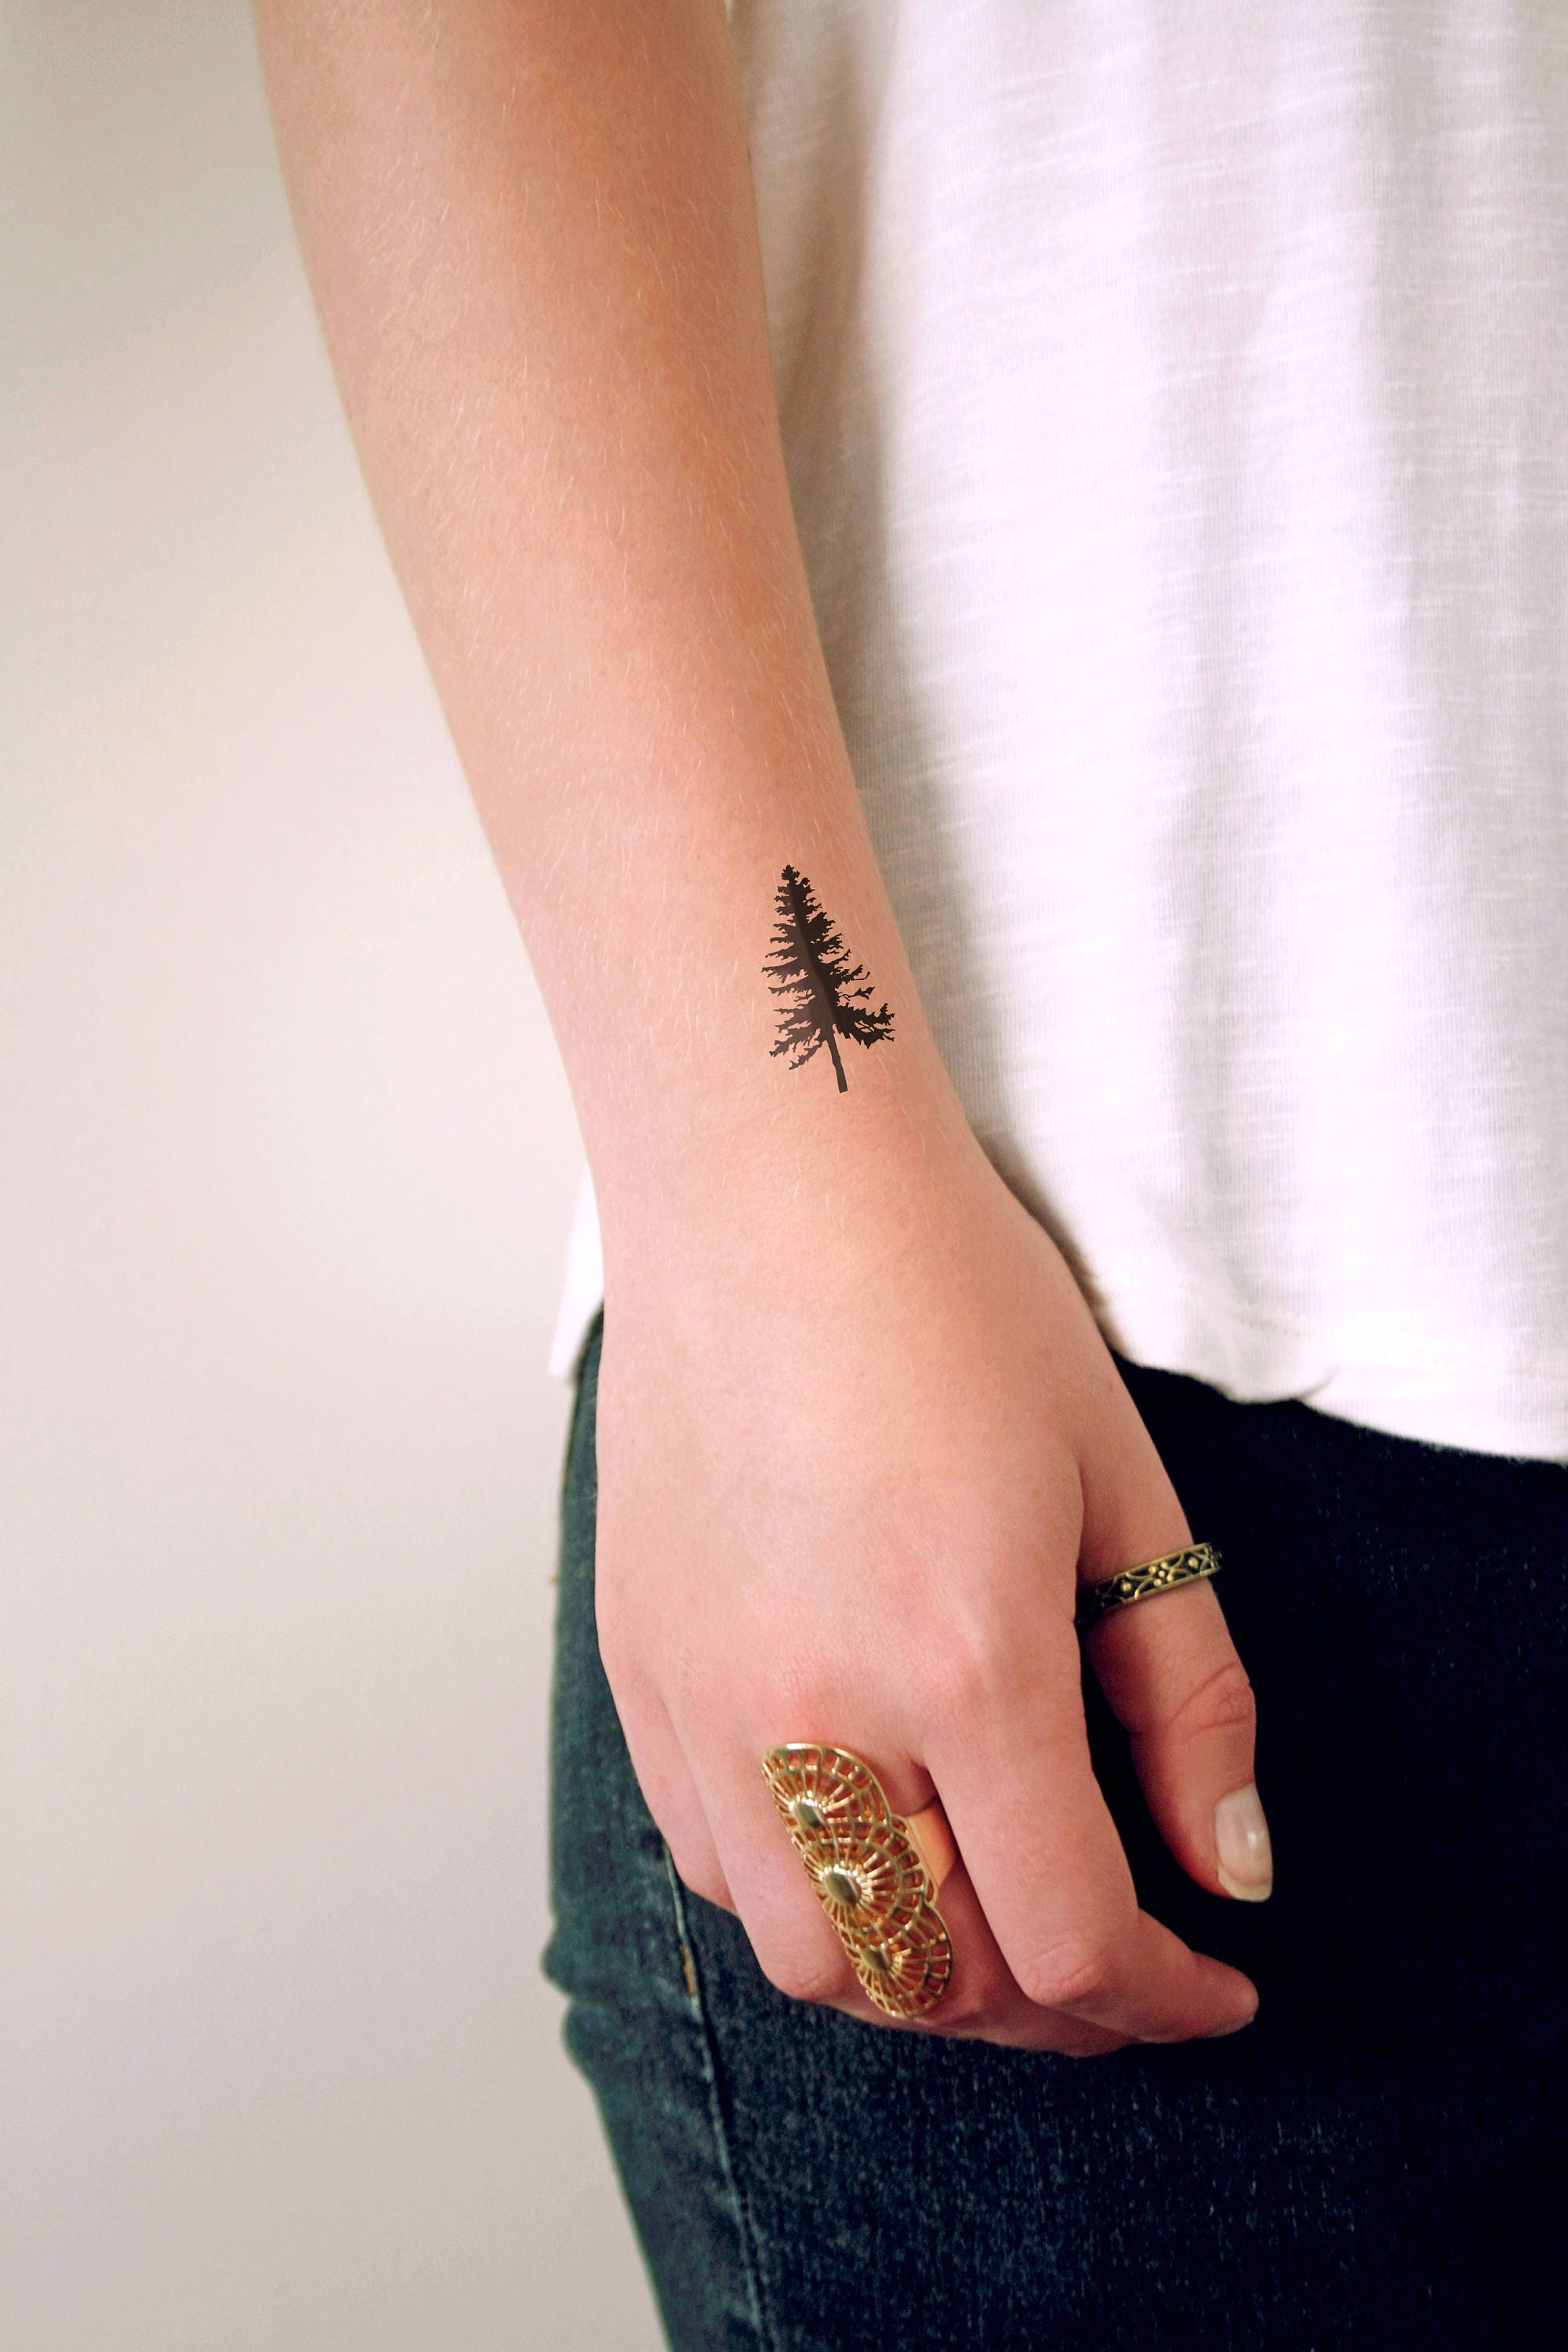 pine tree temporary tattoo / pine tree tattoo / boho tattoo /